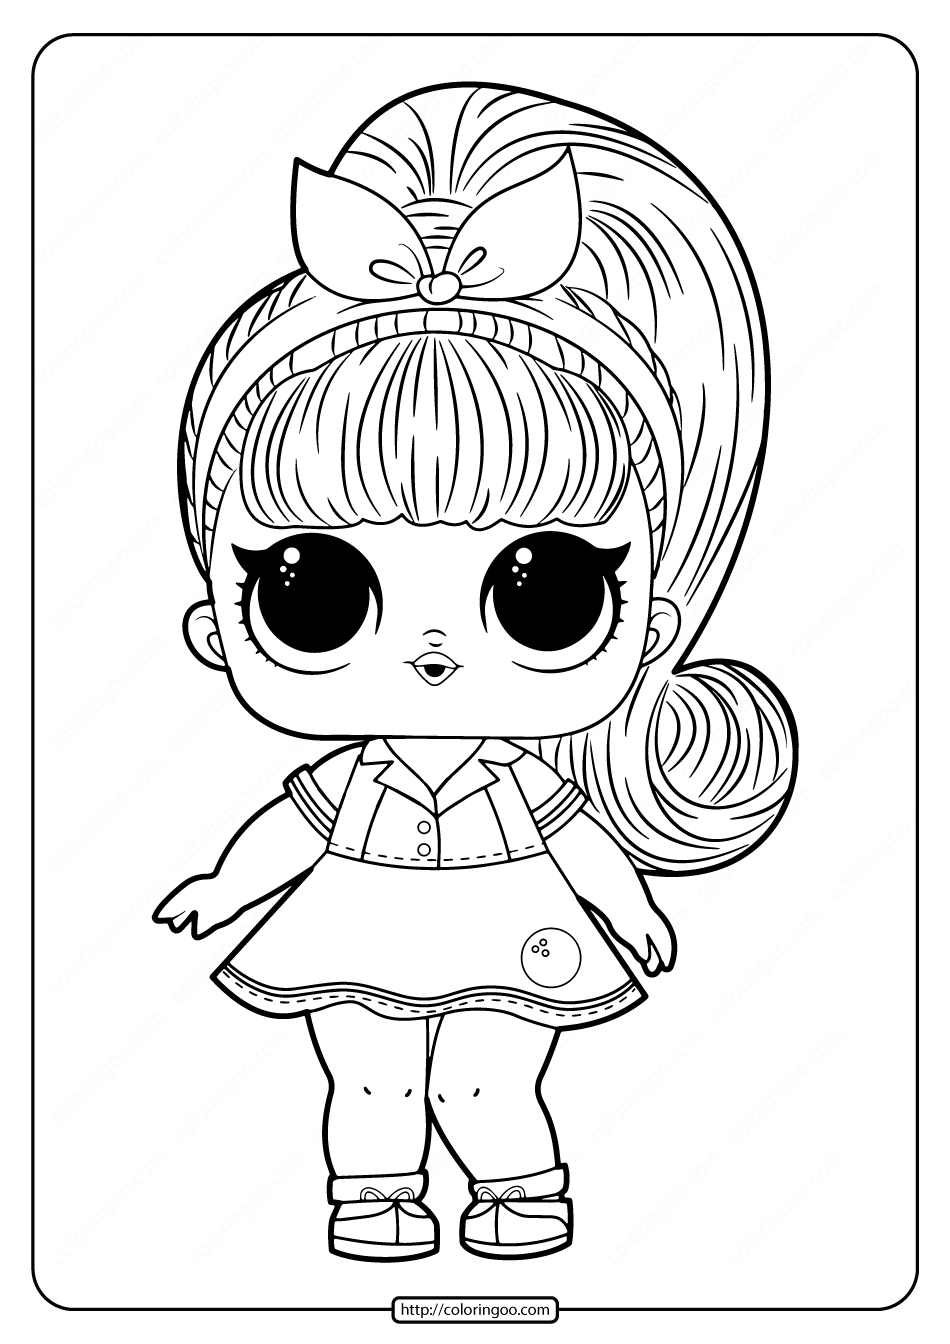 Printable Lol Doll Coloring Pages For Free High Quality Free Printable Pdf Coloring Drawin Dinosaur Coloring Pages Cartoon Coloring Pages Cute Coloring Pages